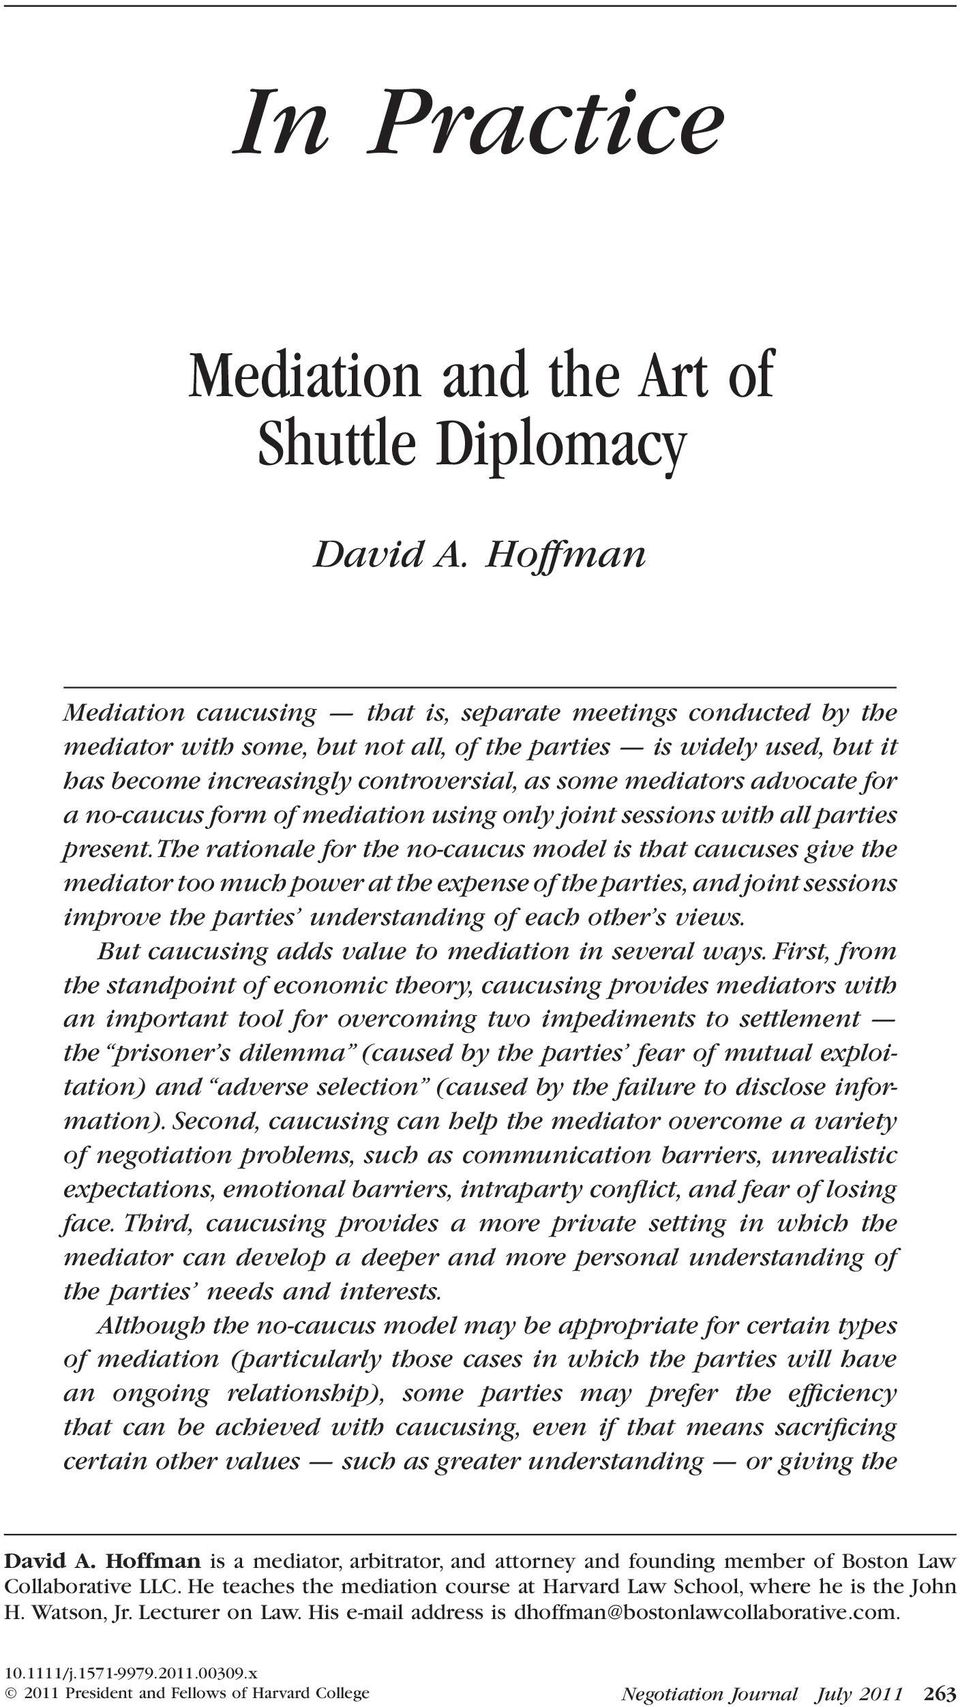 Shuttle diplomacy as a method of negotiation